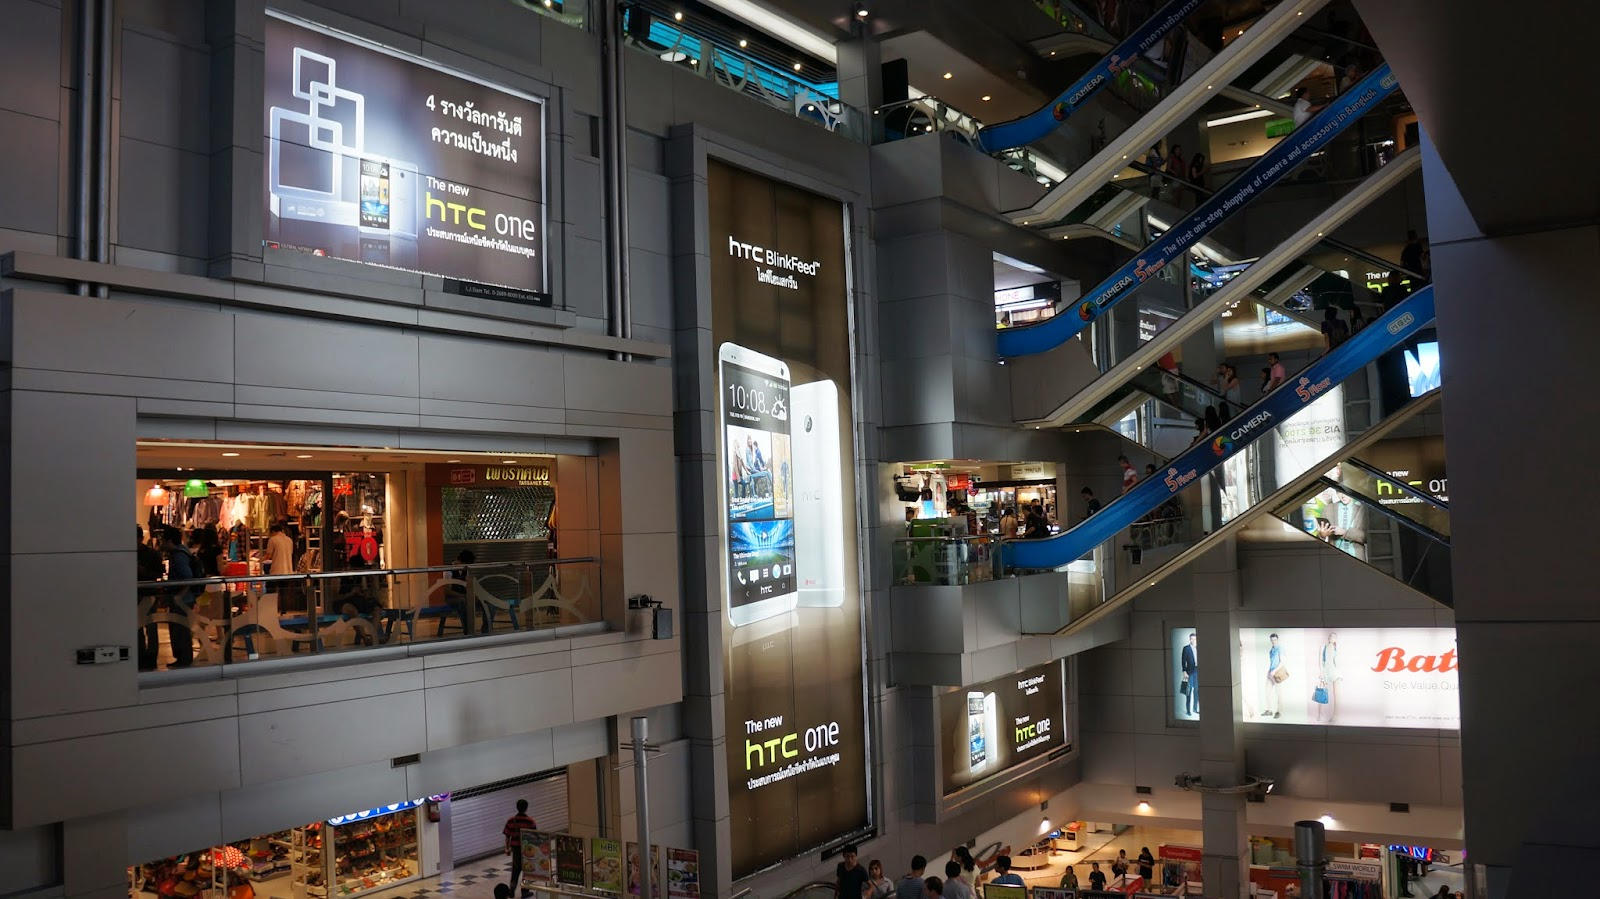 MBK Center, one of the best places in Bangkok for souvenir hunting